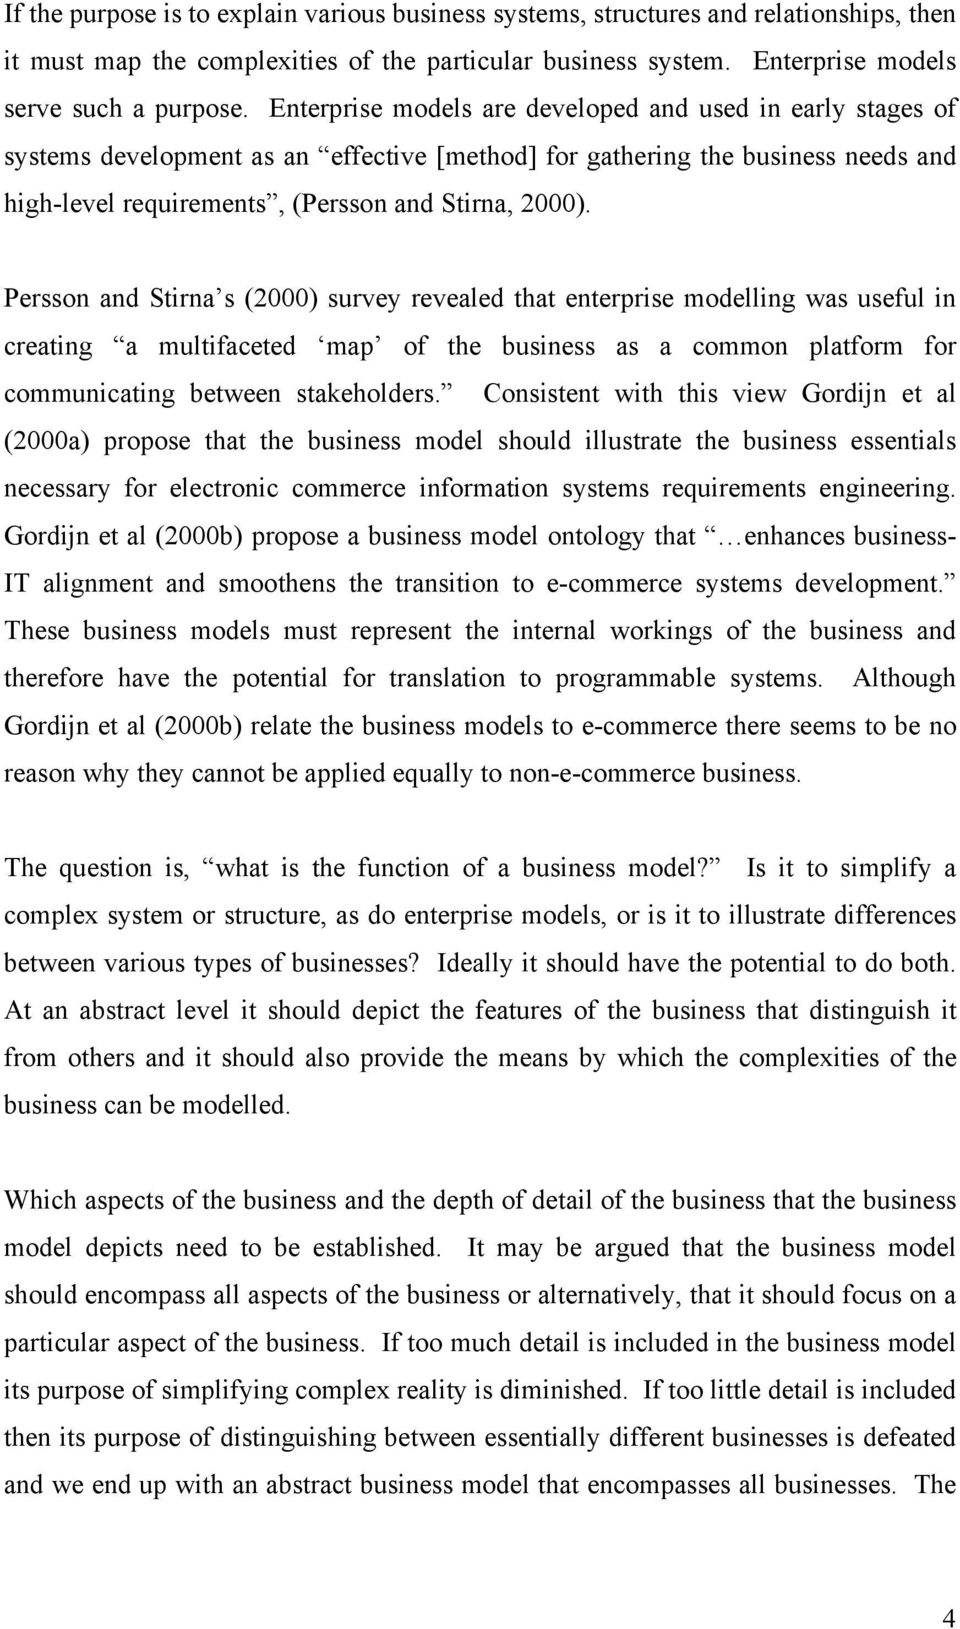 Persson and Stirna s (2000) survey revealed that enterprise modelling was useful in creating a multifaceted map of the business as a common platform for communicating between stakeholders.